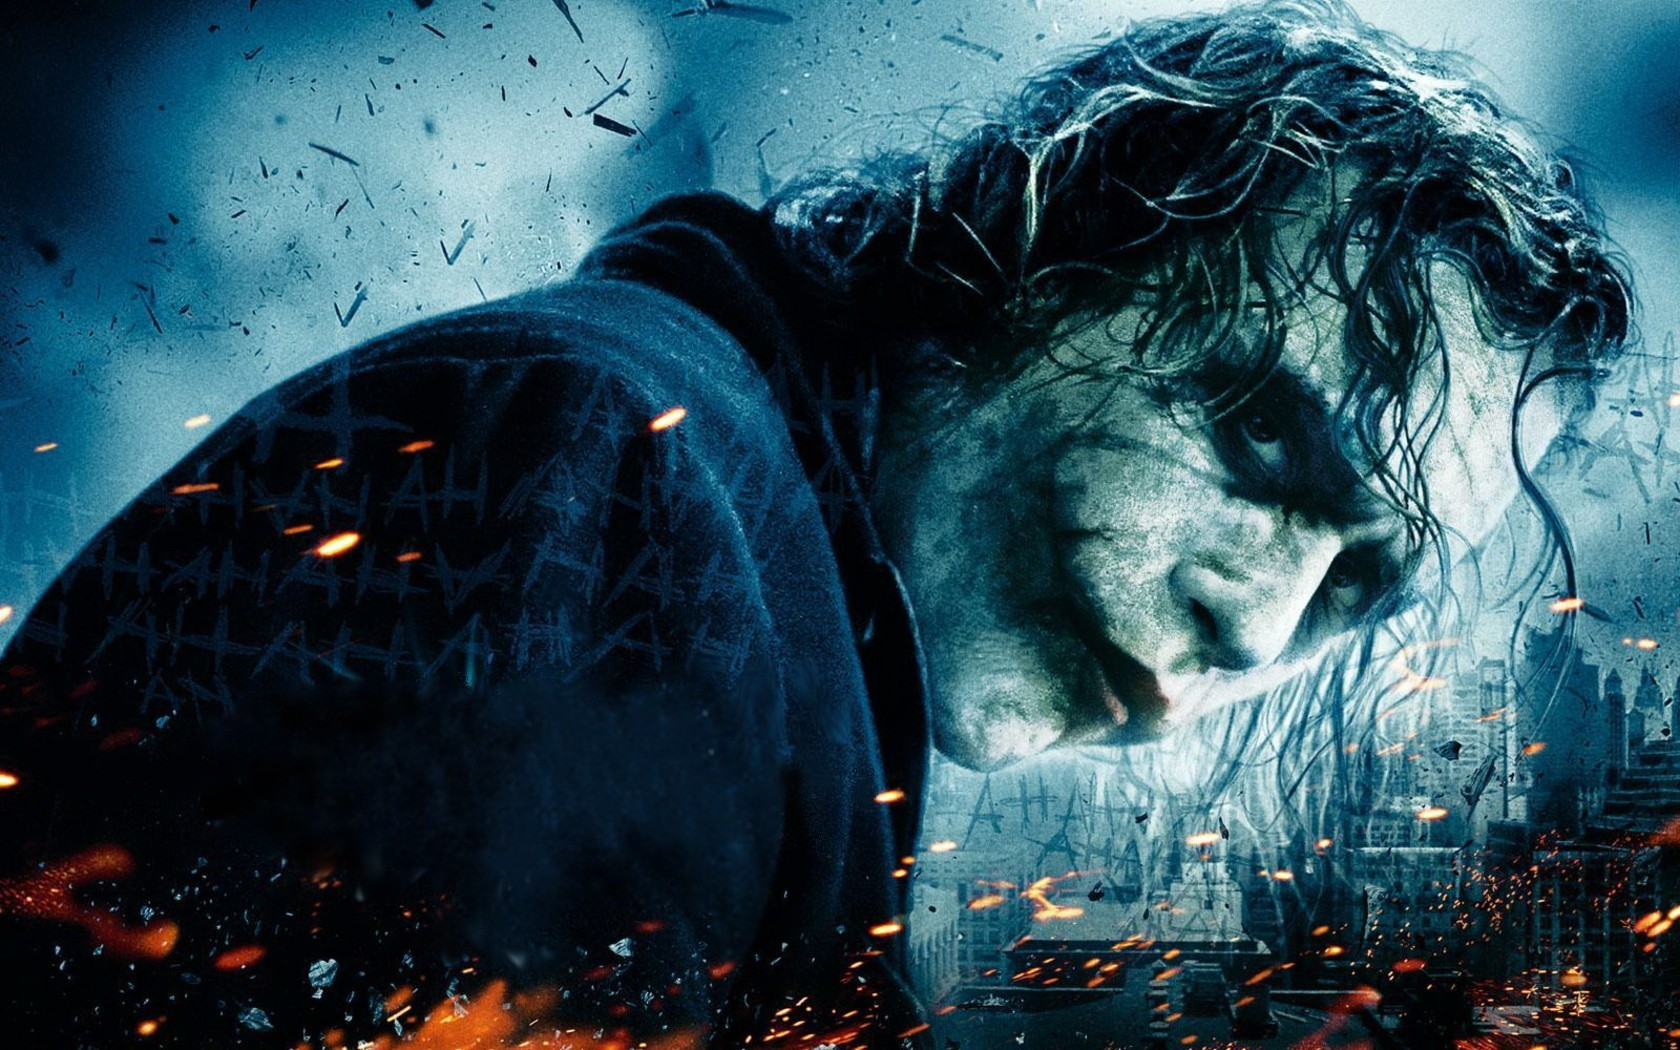 Films - The Dark Knight  - Joker - Batman - Films - Donker Achtergrond